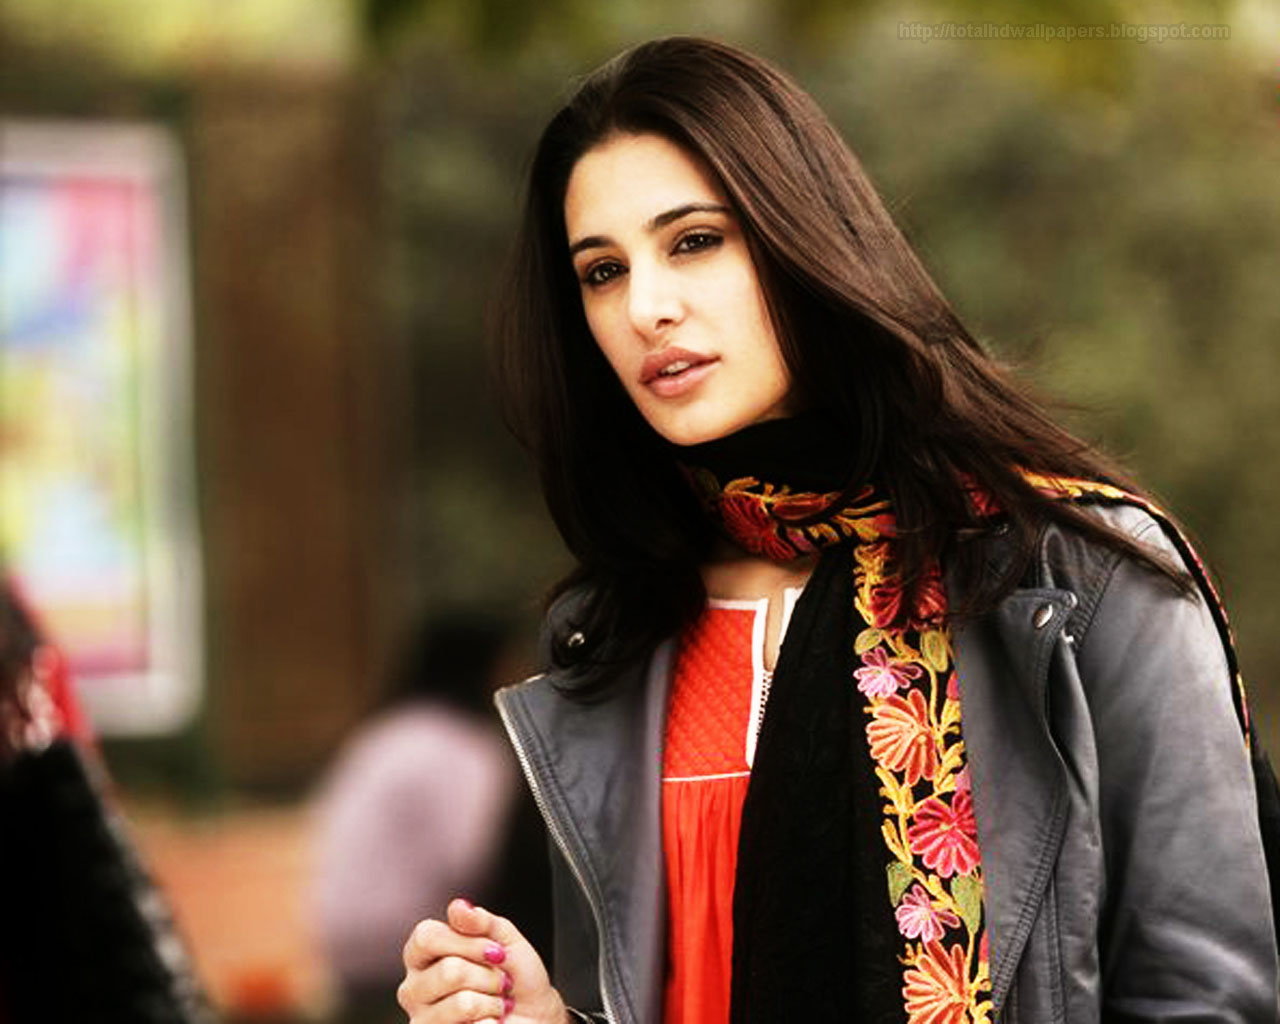 Actress Wallpapers Download: Bollywood Actress Wallpapers High Quality Download